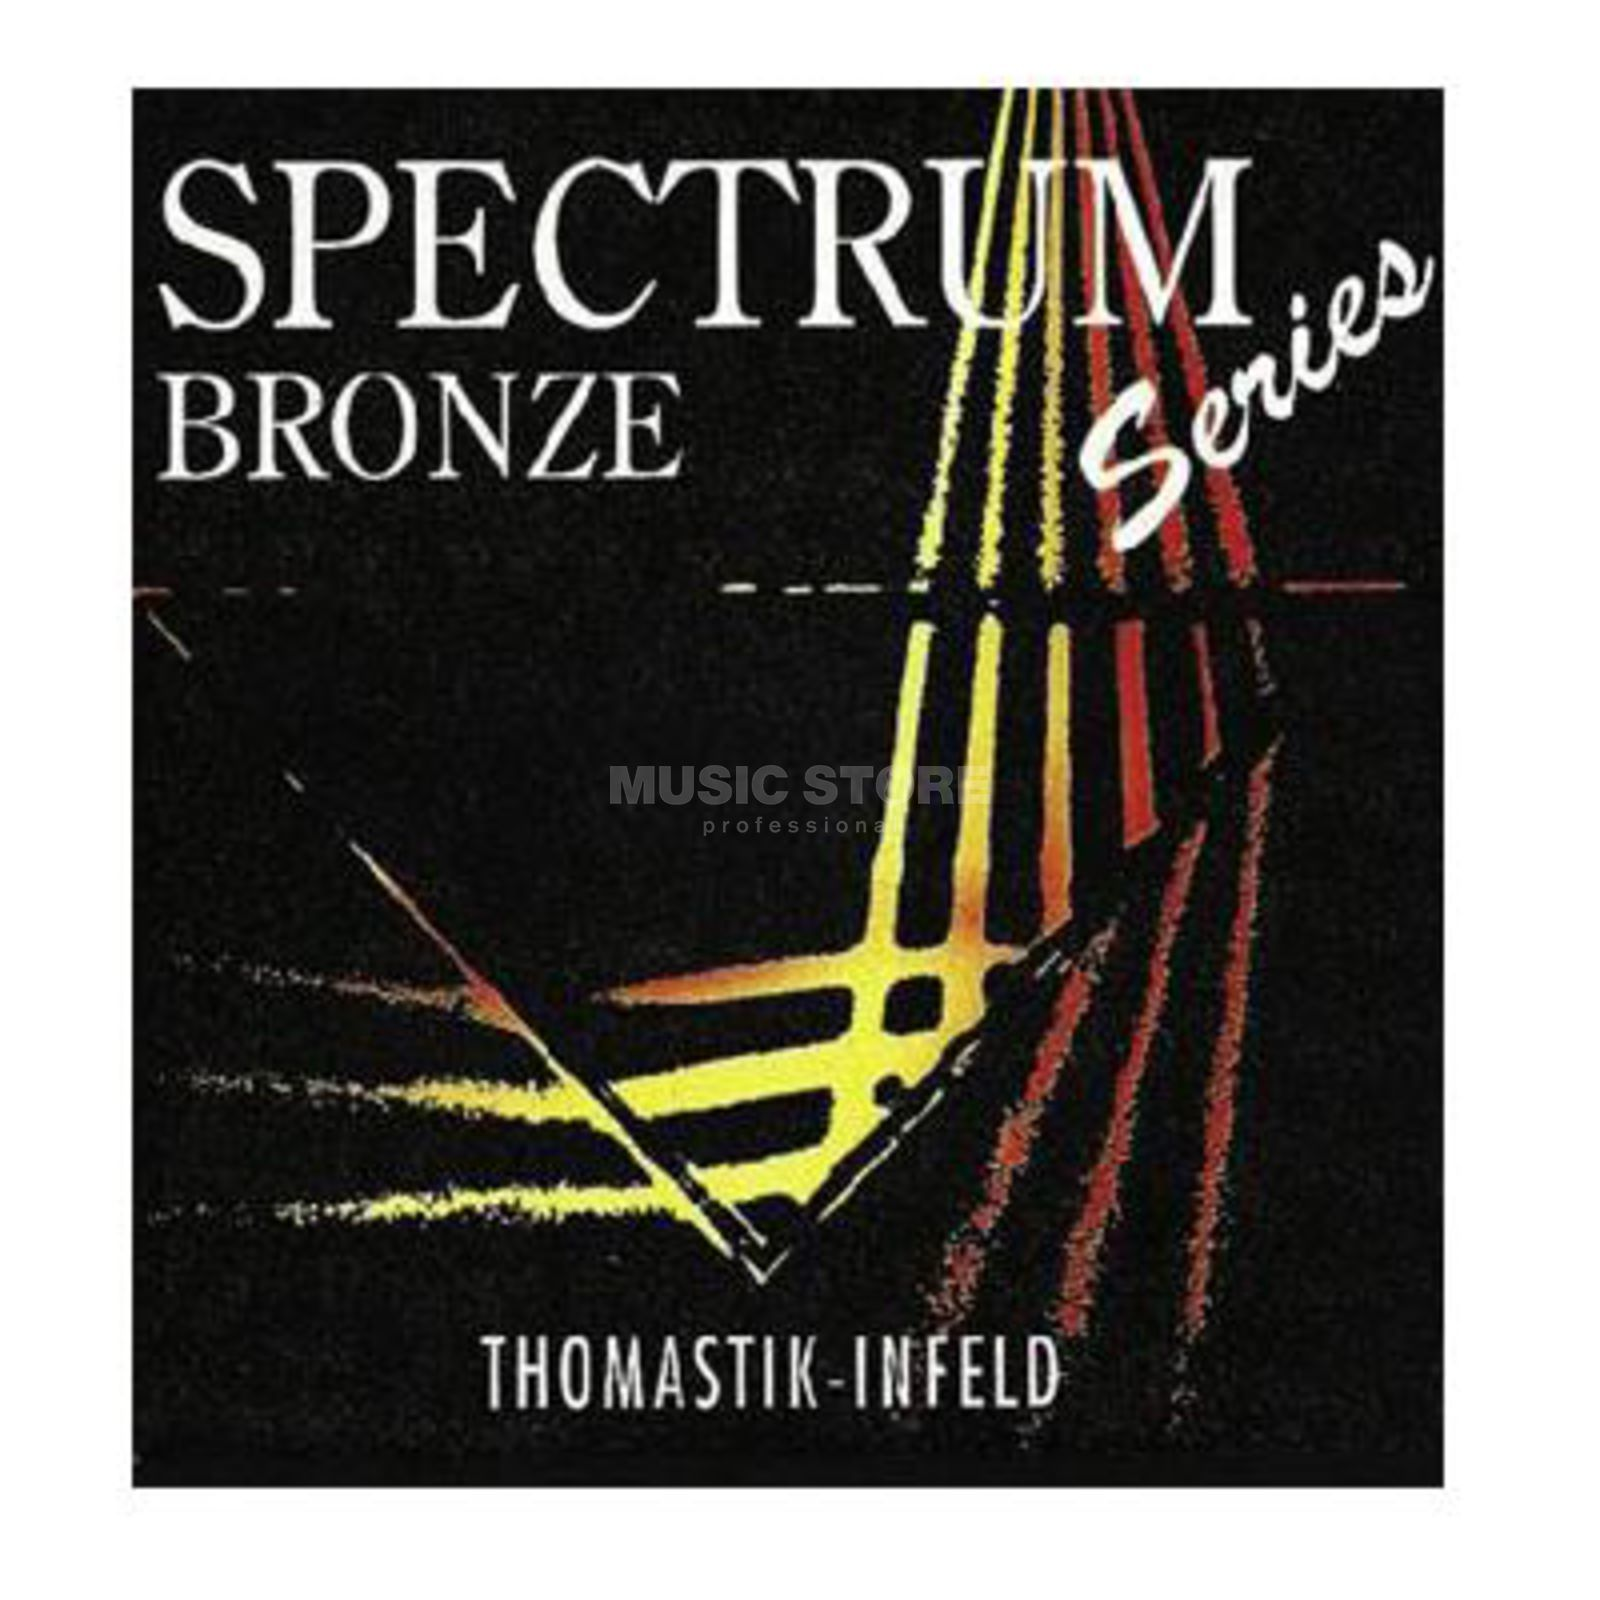 Thomastik SB210 A-Saiten 10-50 12-String Spectrum Bronze extra light Produktbild